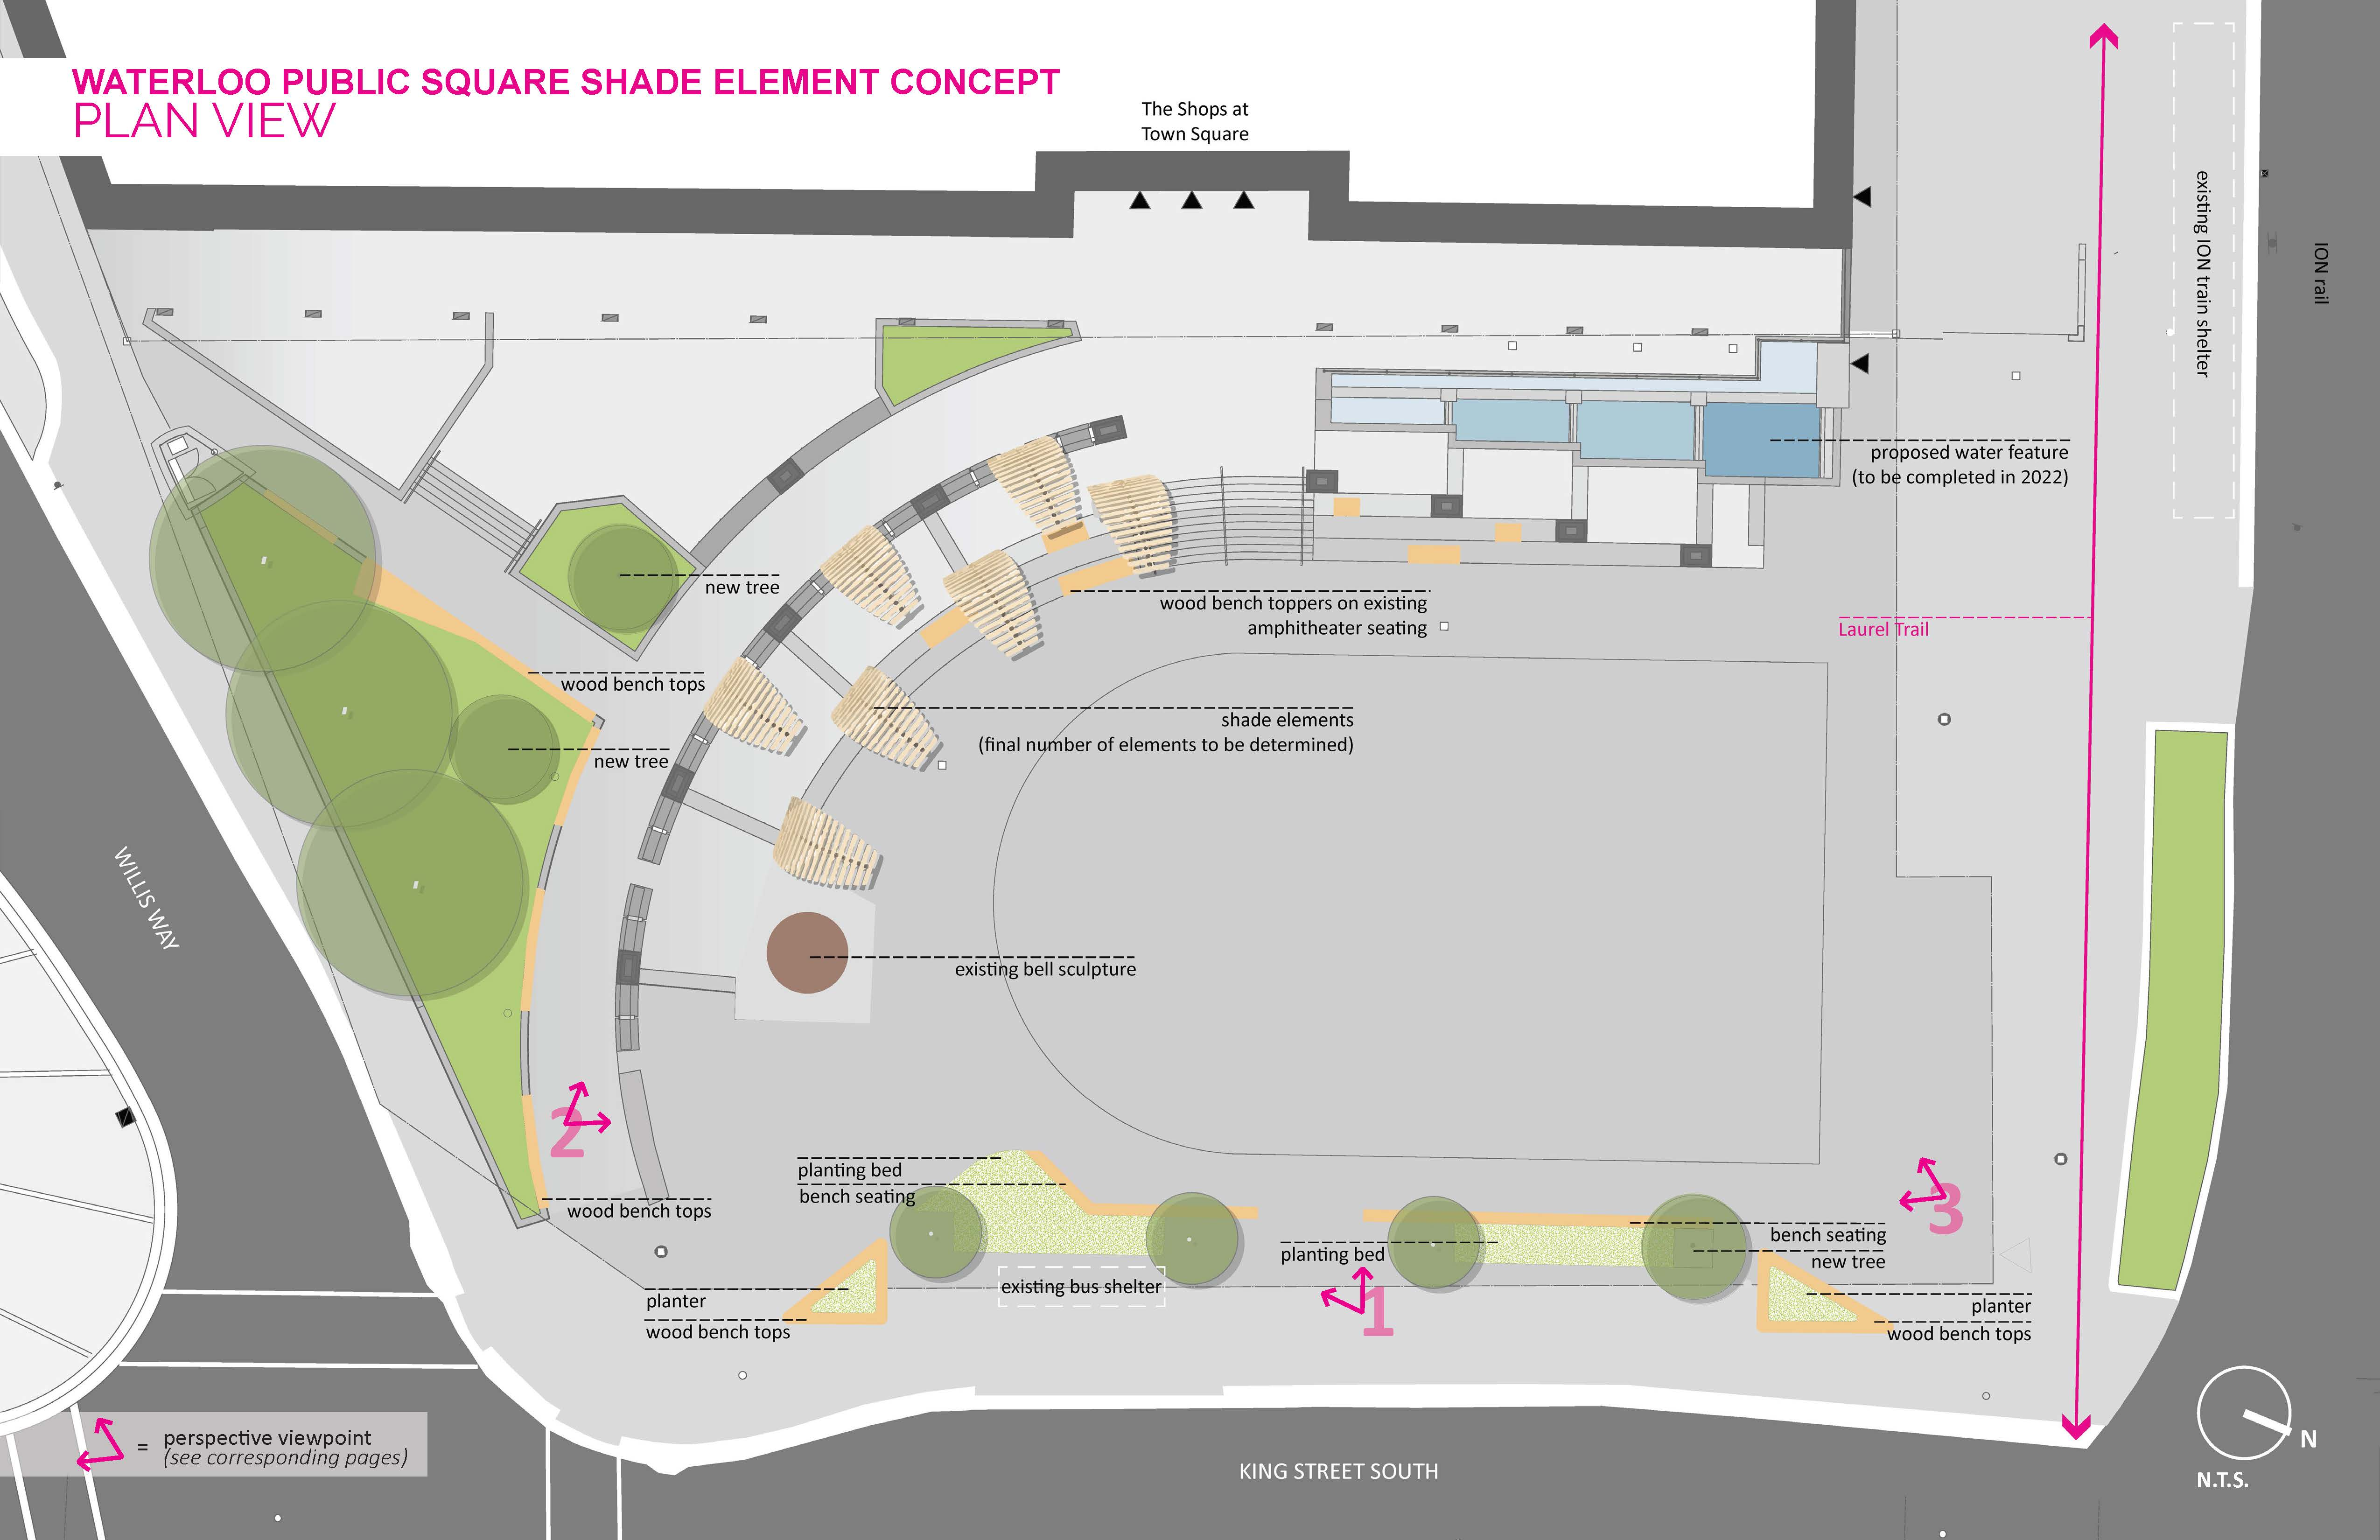 A site plan view of the Waterloo Public Square shade element concept